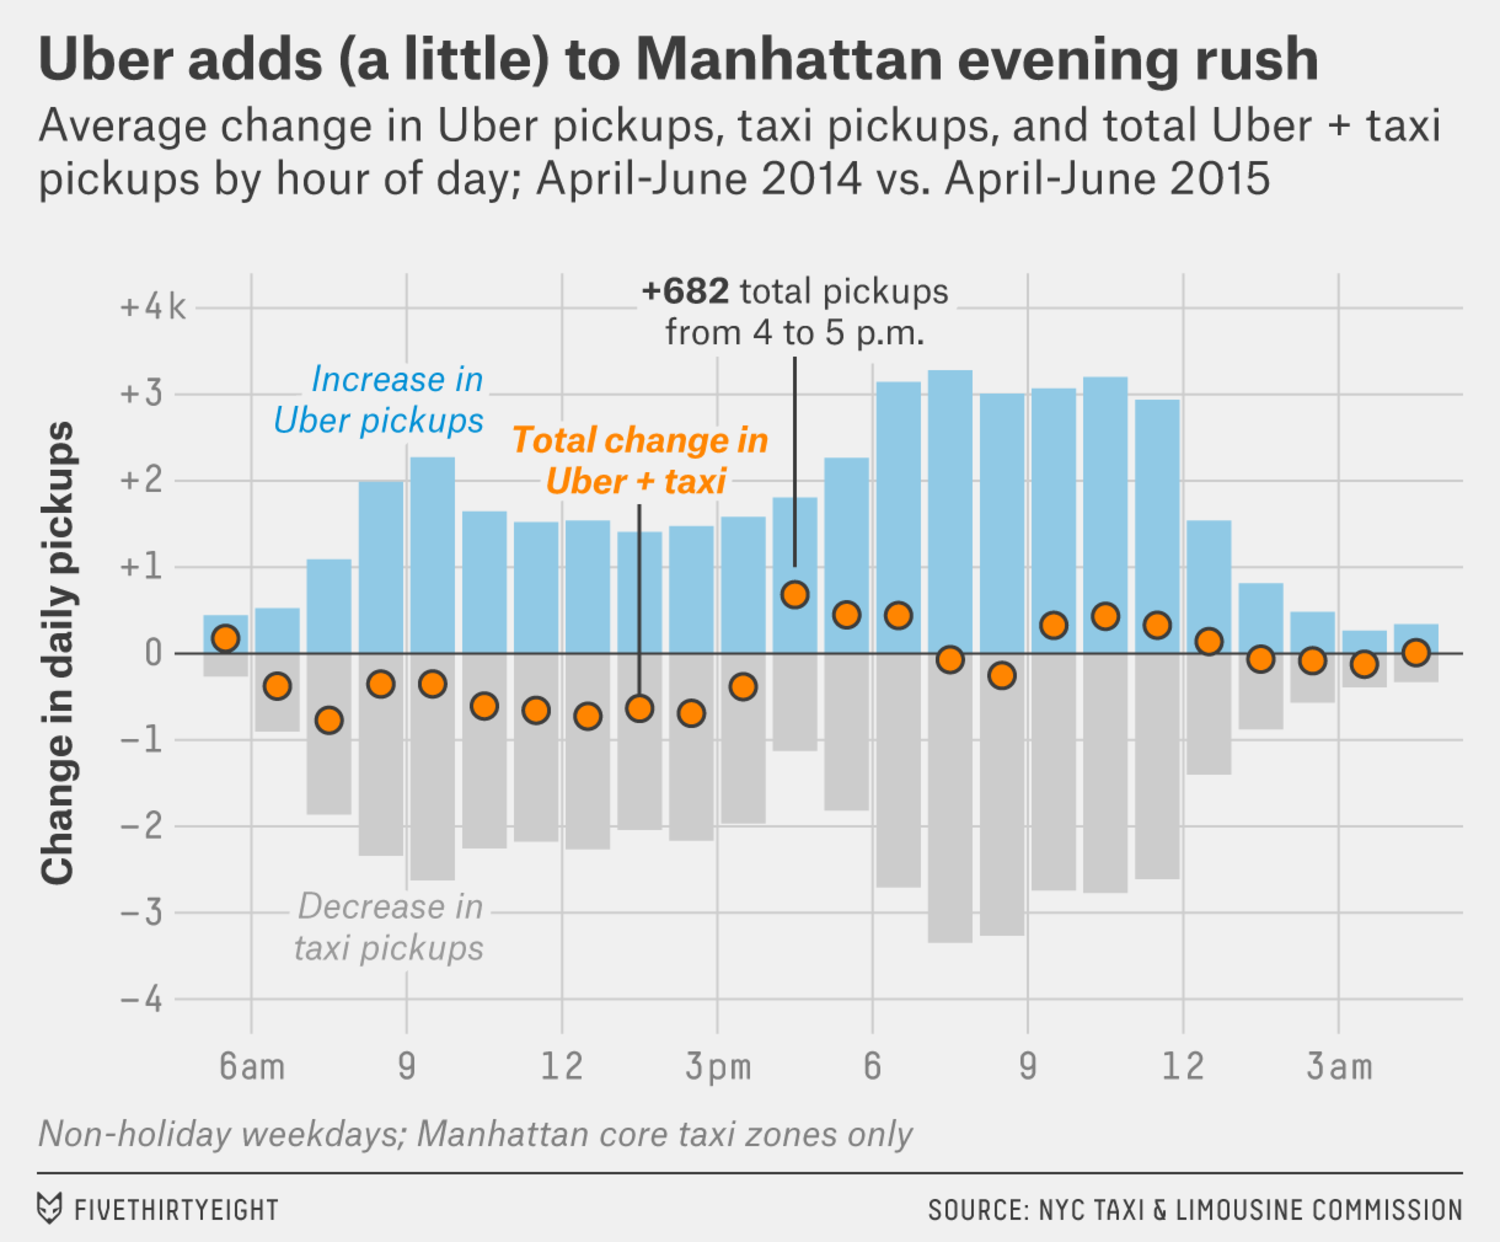 Uber adds to the Manhattan evening rush